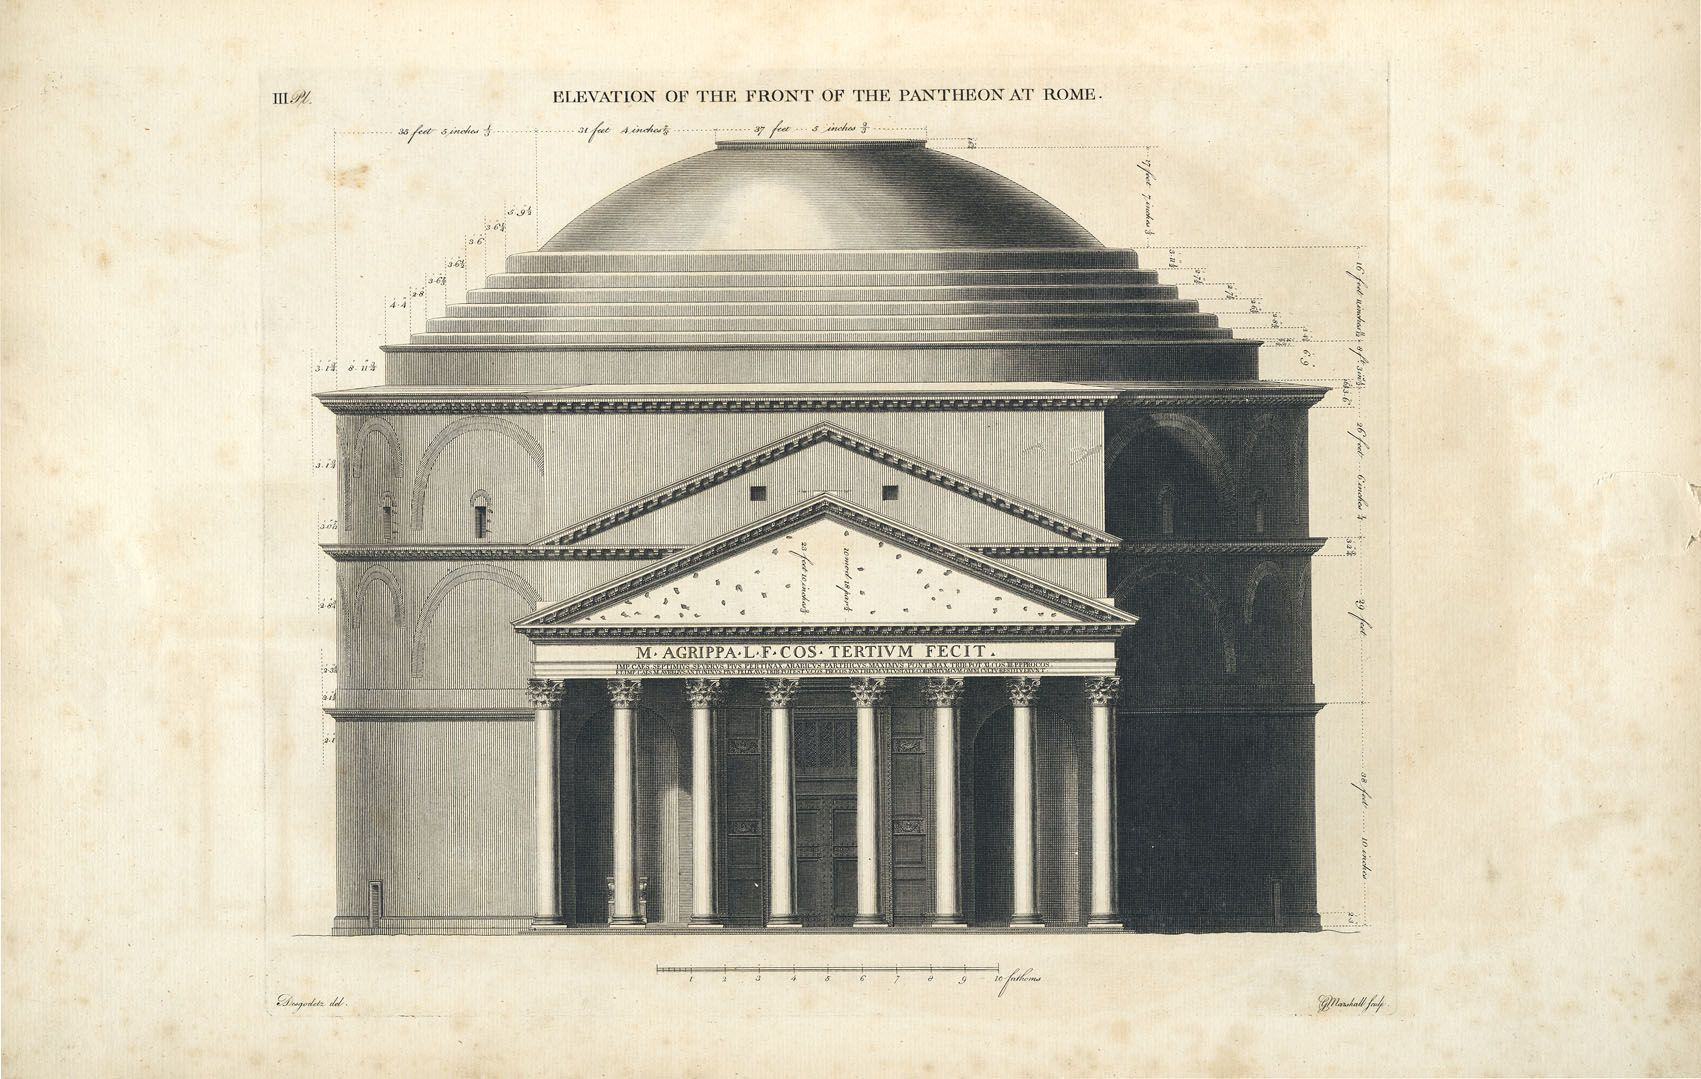 Elevation front. Pantheon. Rome. Italy | Antique ...